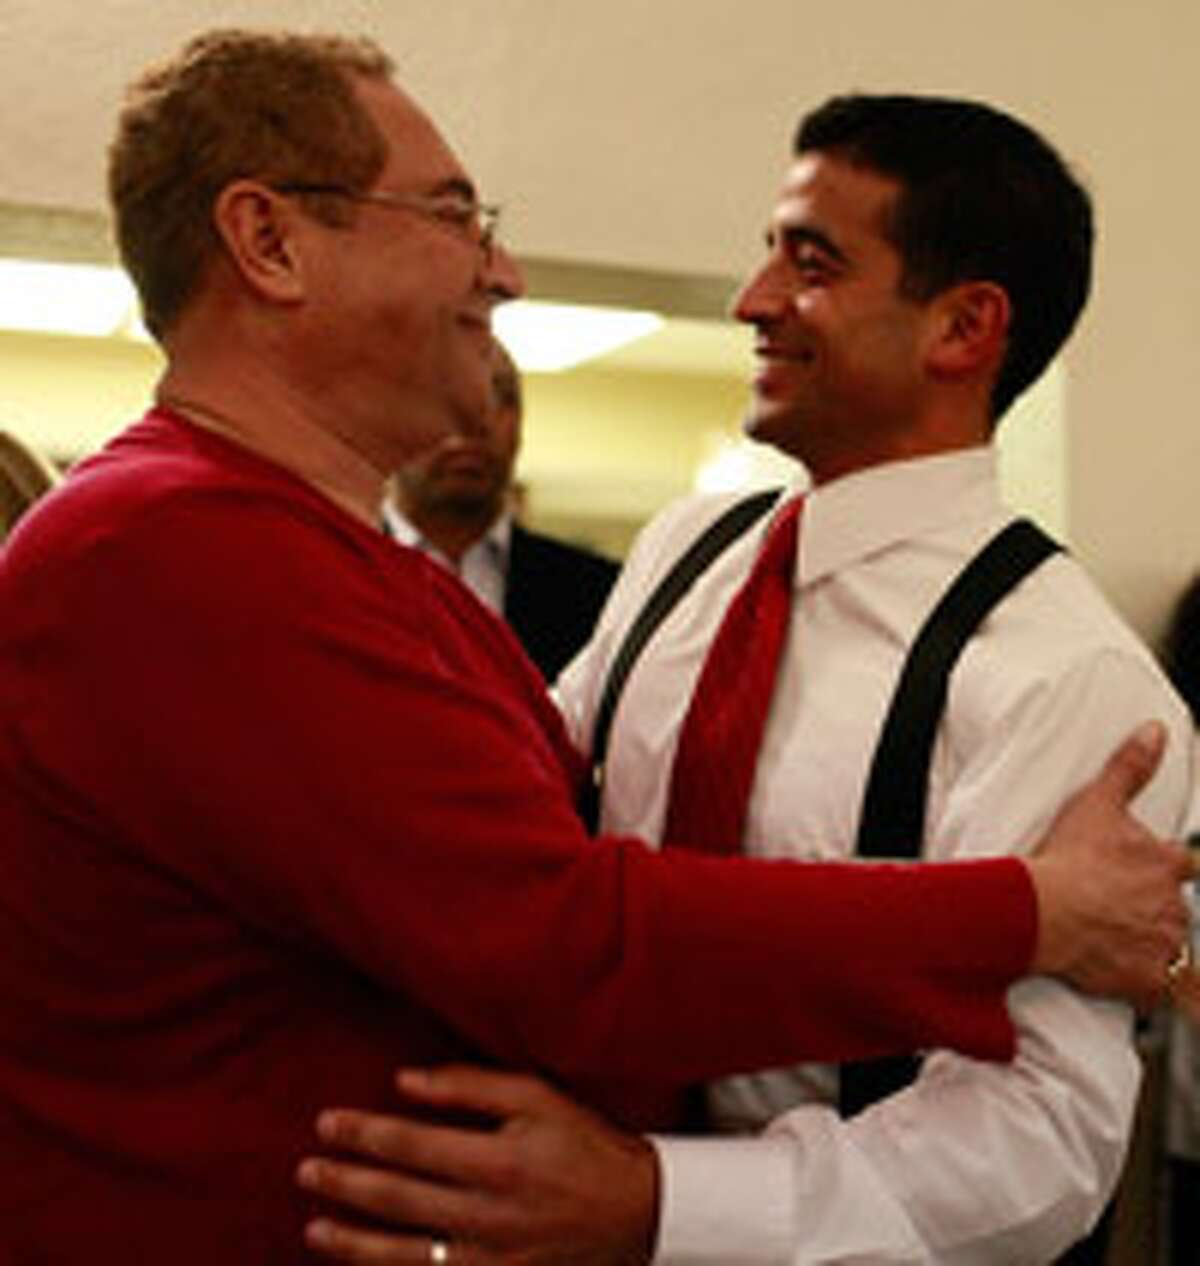 Gerald Flores (left) embraces Nicholas LaHood moments before LaHood addressed his supporters.